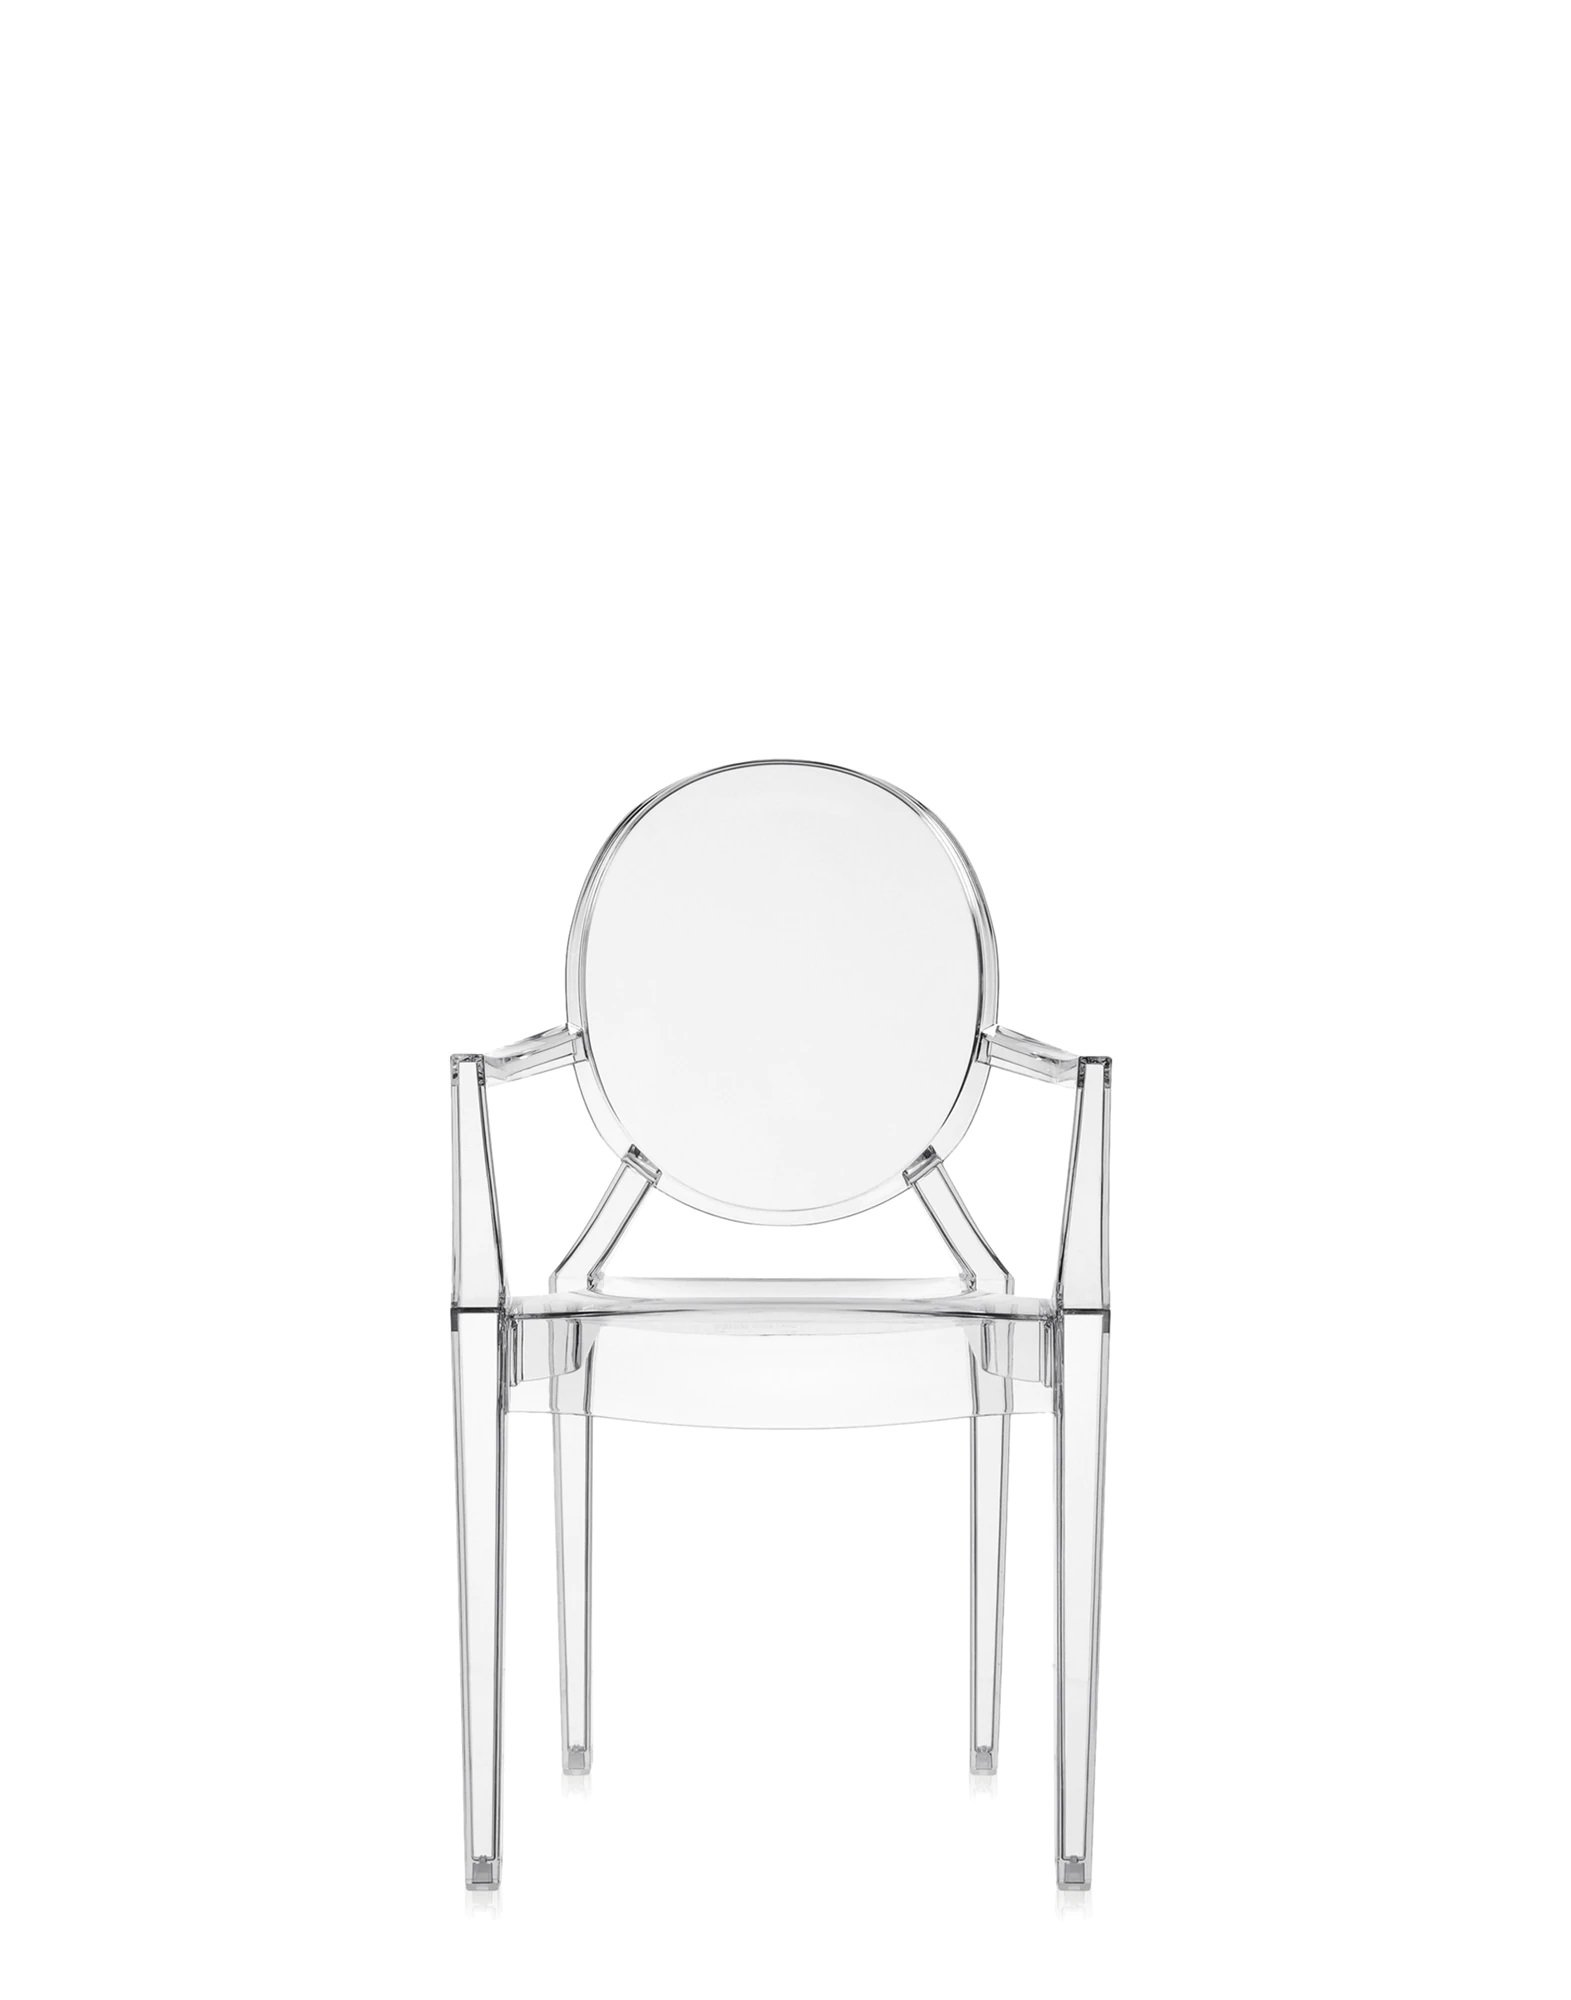 Lou Lou Ghost Kids Chair from Kartell, designed by Philippe Starck